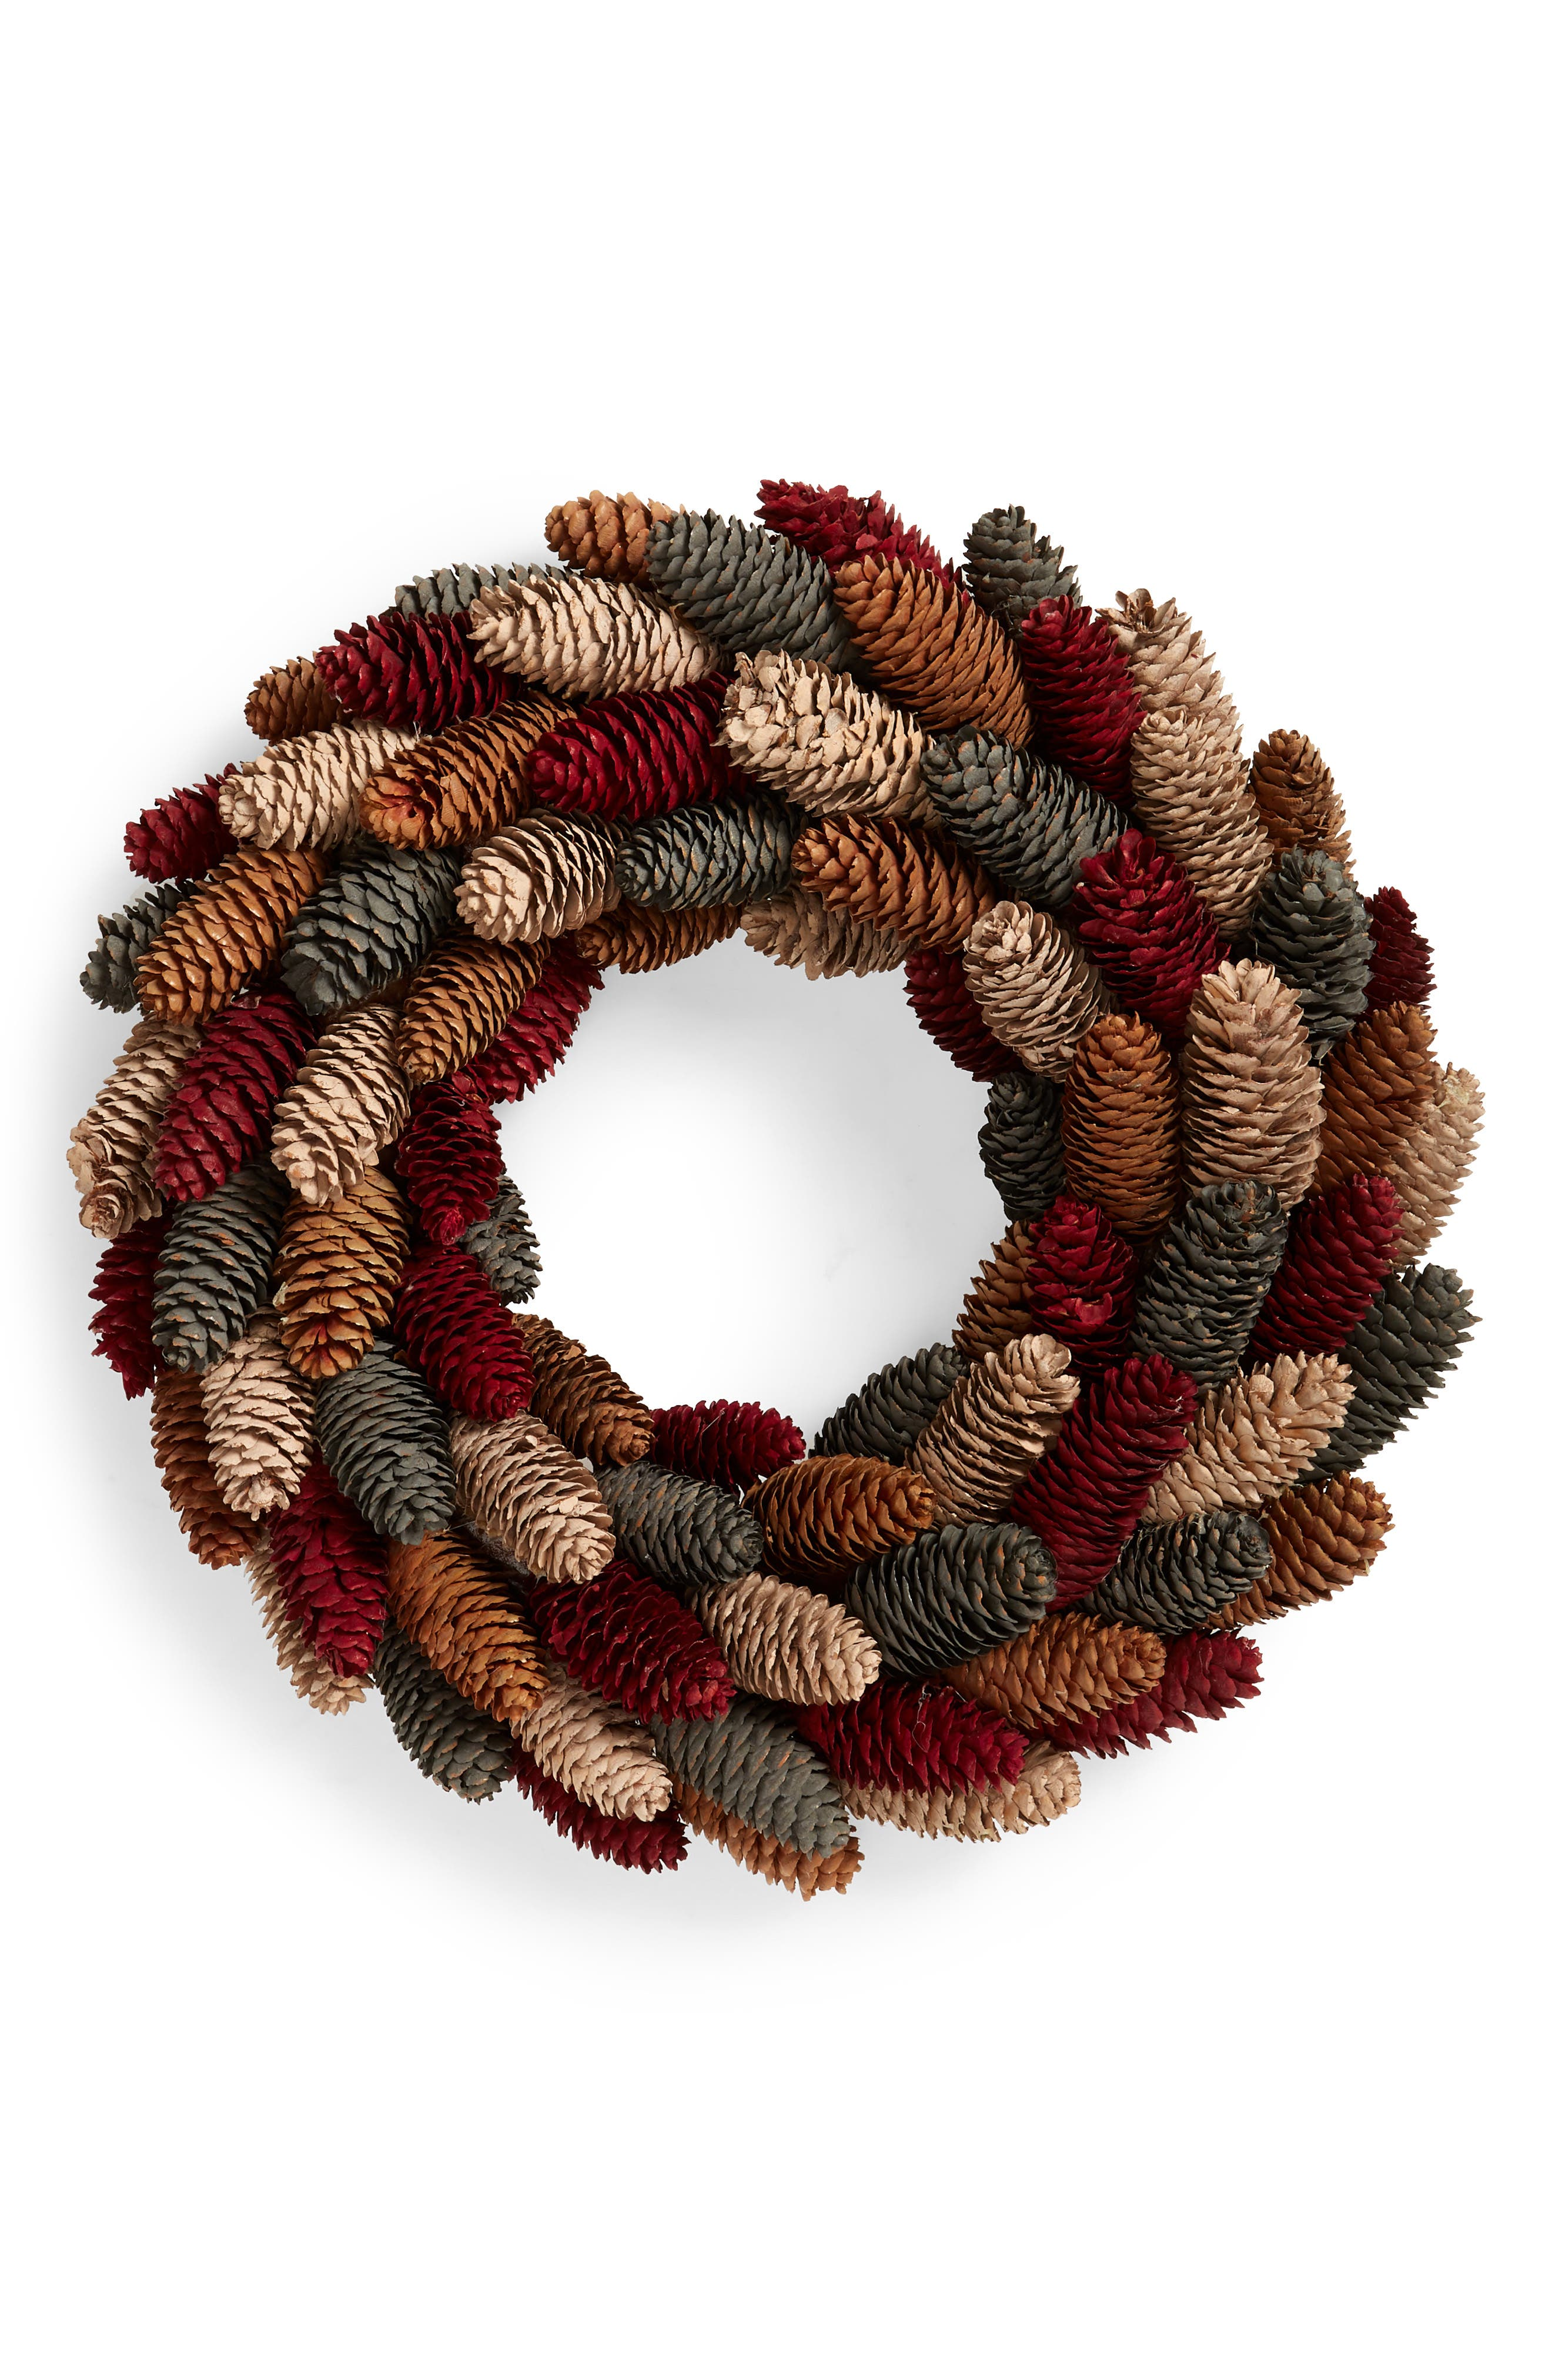 A medley of painted pinecones evokes the colors of the autumnal leaves on this unique door wreath. Style Name: Allstate Pinecone Wreath. Style Number: 6082329. Available in stores.